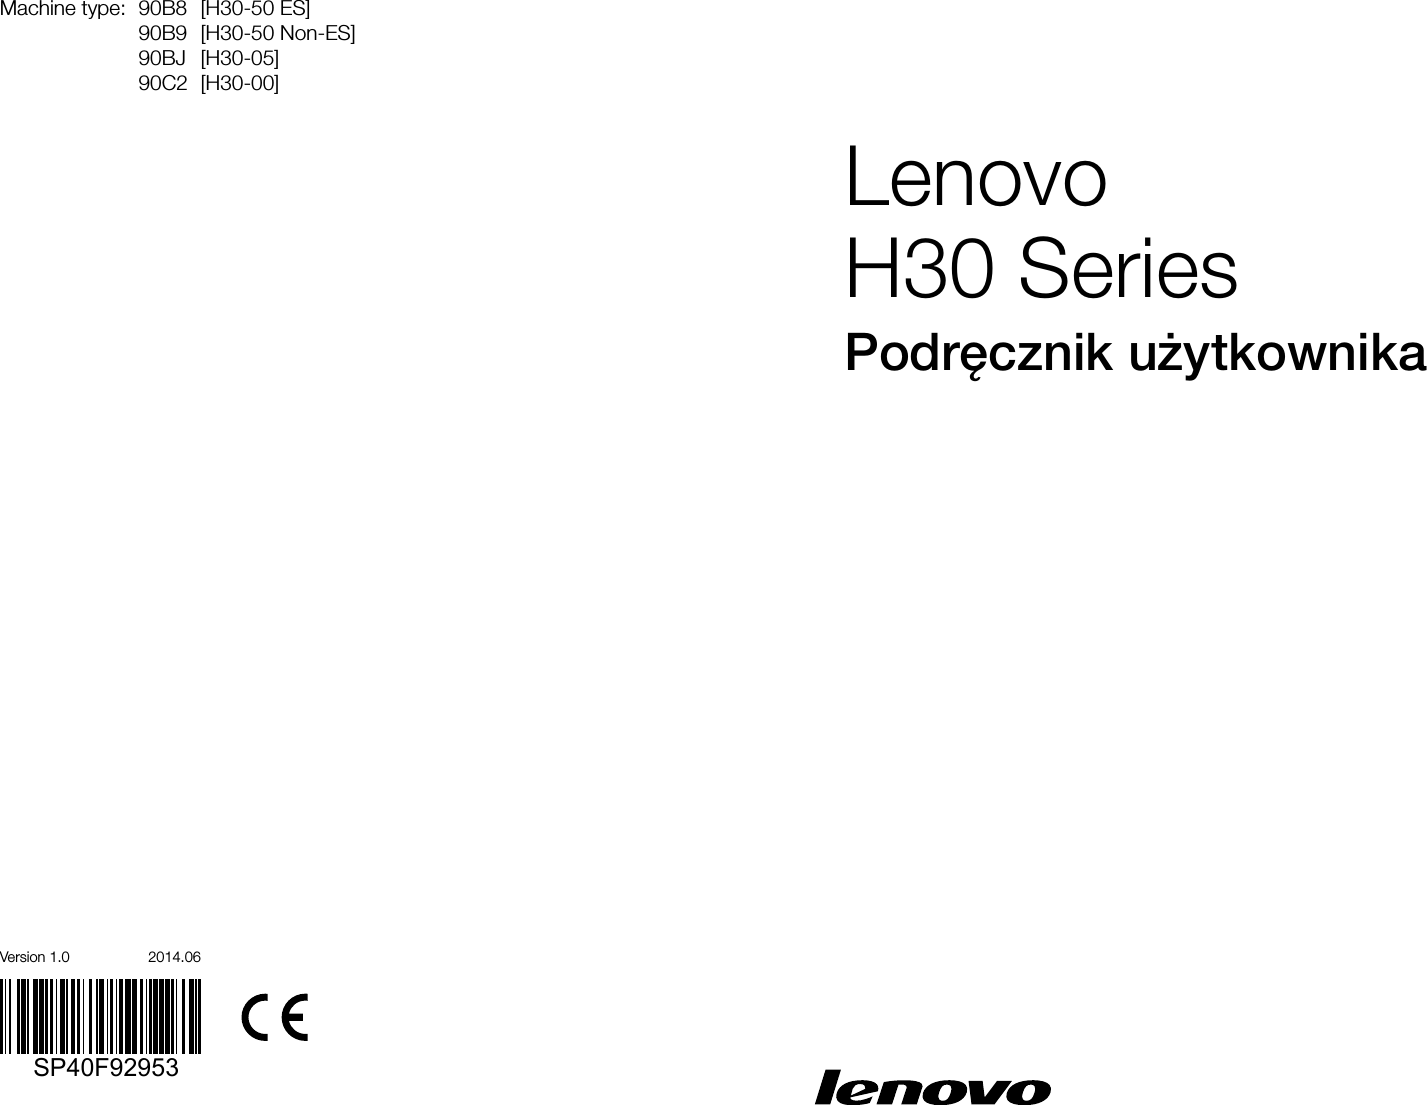 Lenovo H30 Ug V1.0 Win8.1 Pl Online 20140715 User Manual